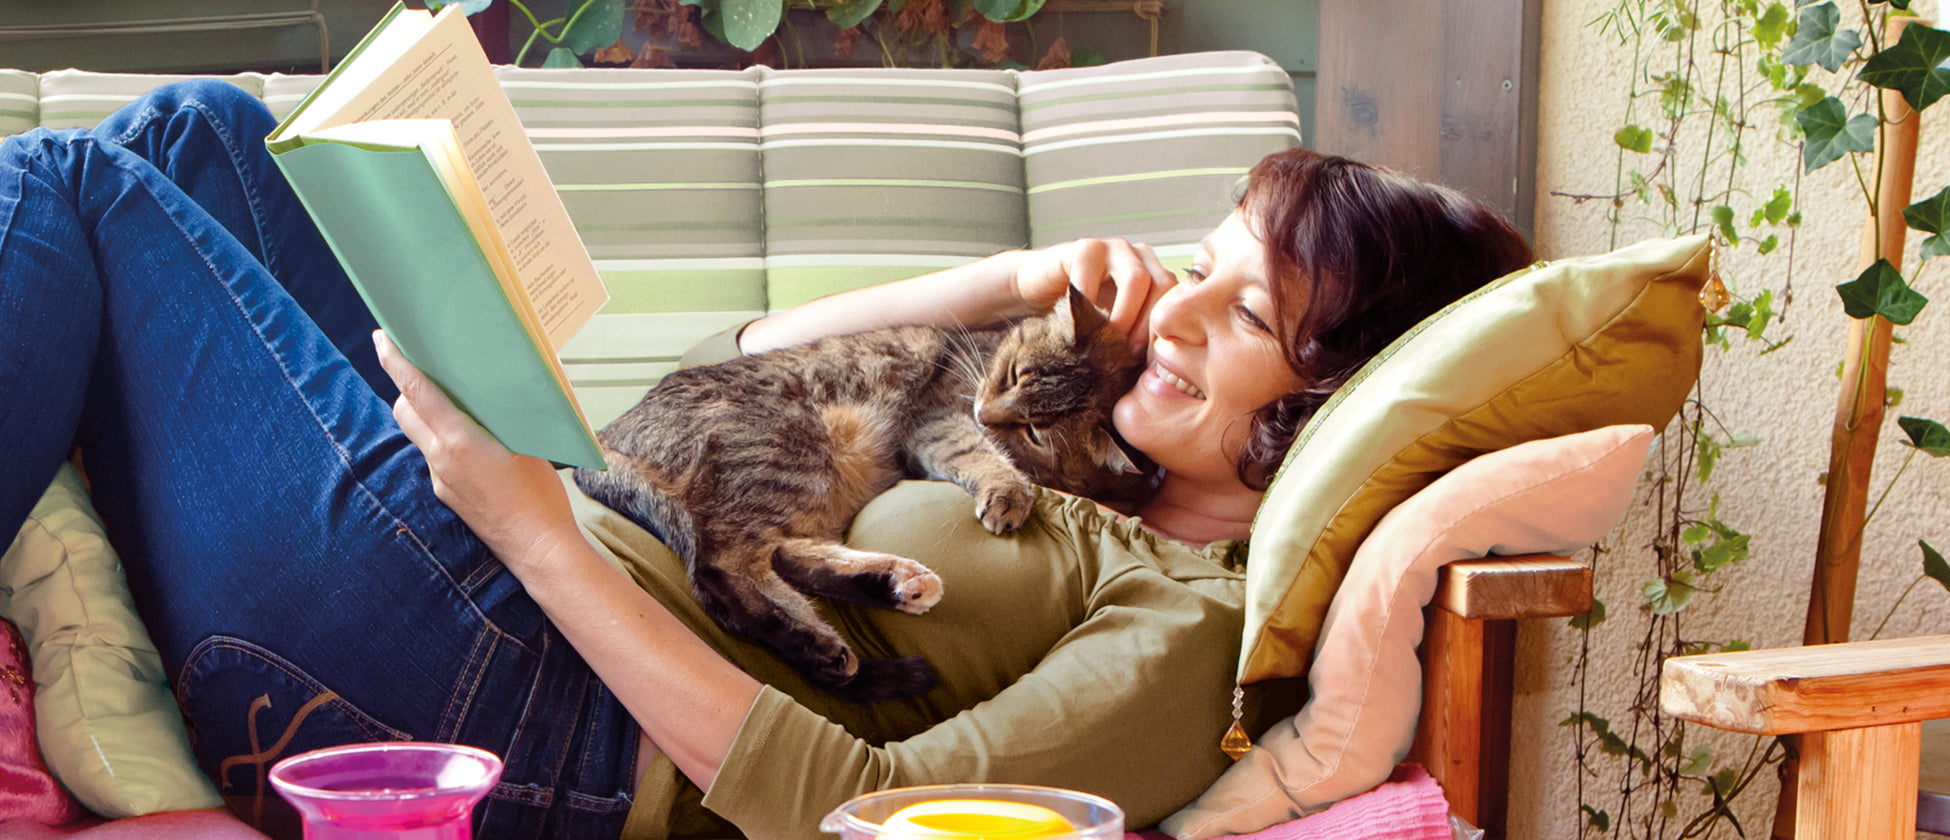 Women sharing a story with her contented and elderly cat on a comfy sofa